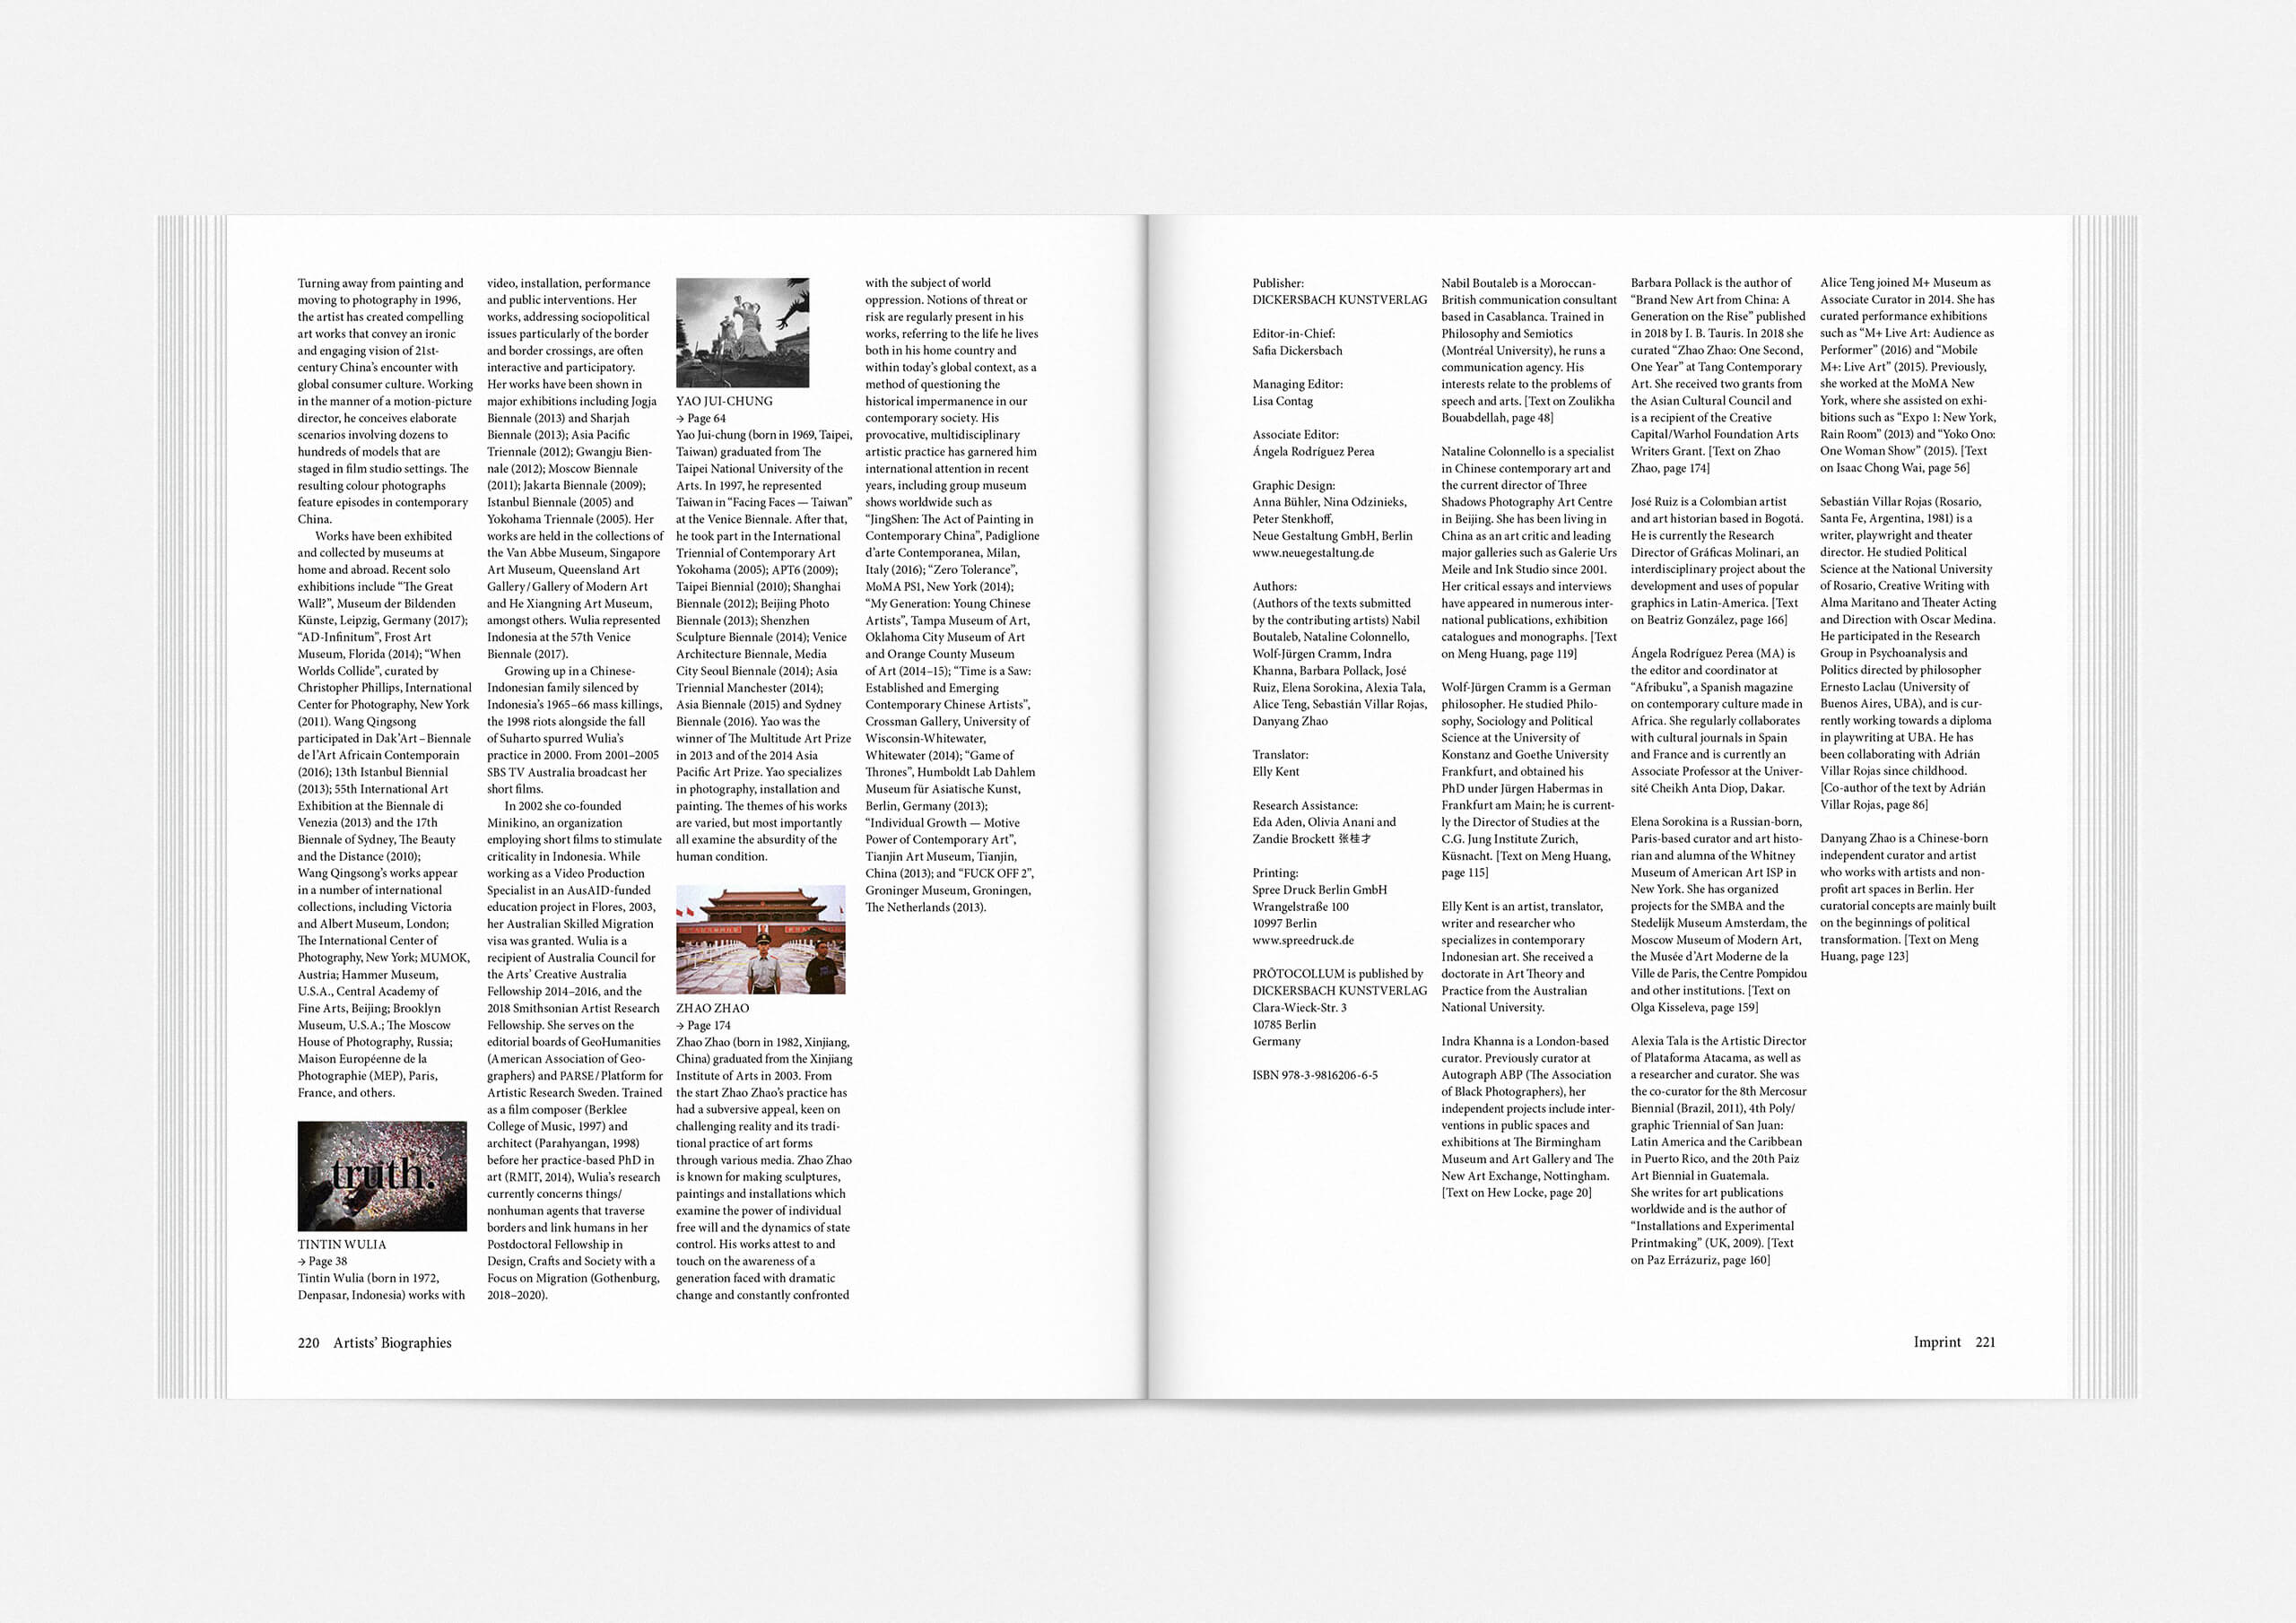 http://neuegestaltung.de/media/pages/clients/protocollum-issue-no-05/d61ddb4155-1597415138/protocollum-5-page-220221-ng.jpg